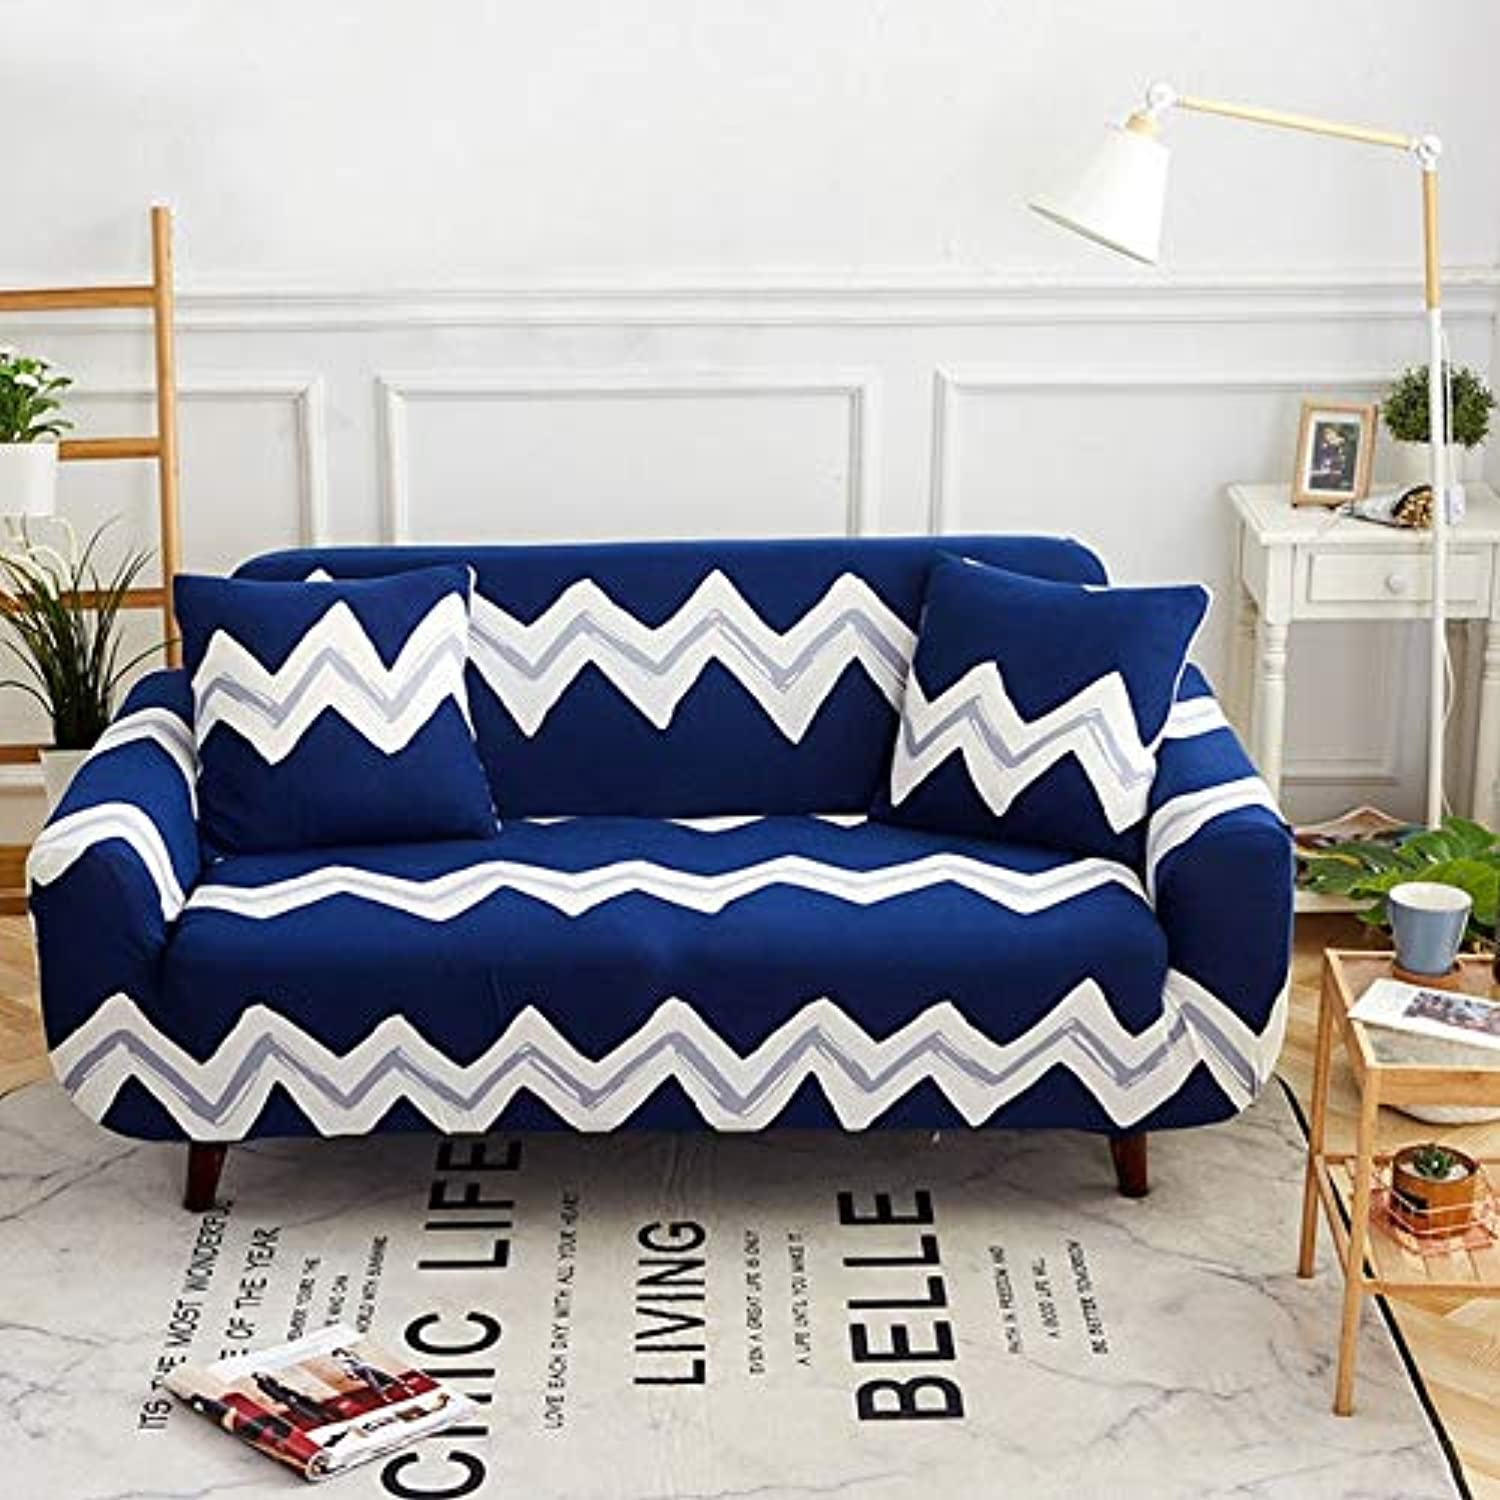 Geometric Printing Modern Dining Room Elastic Sofa Cover Spandex Polyester Couch Cover Predector All-Inclusive Stretch Slipcover   1, Single seat